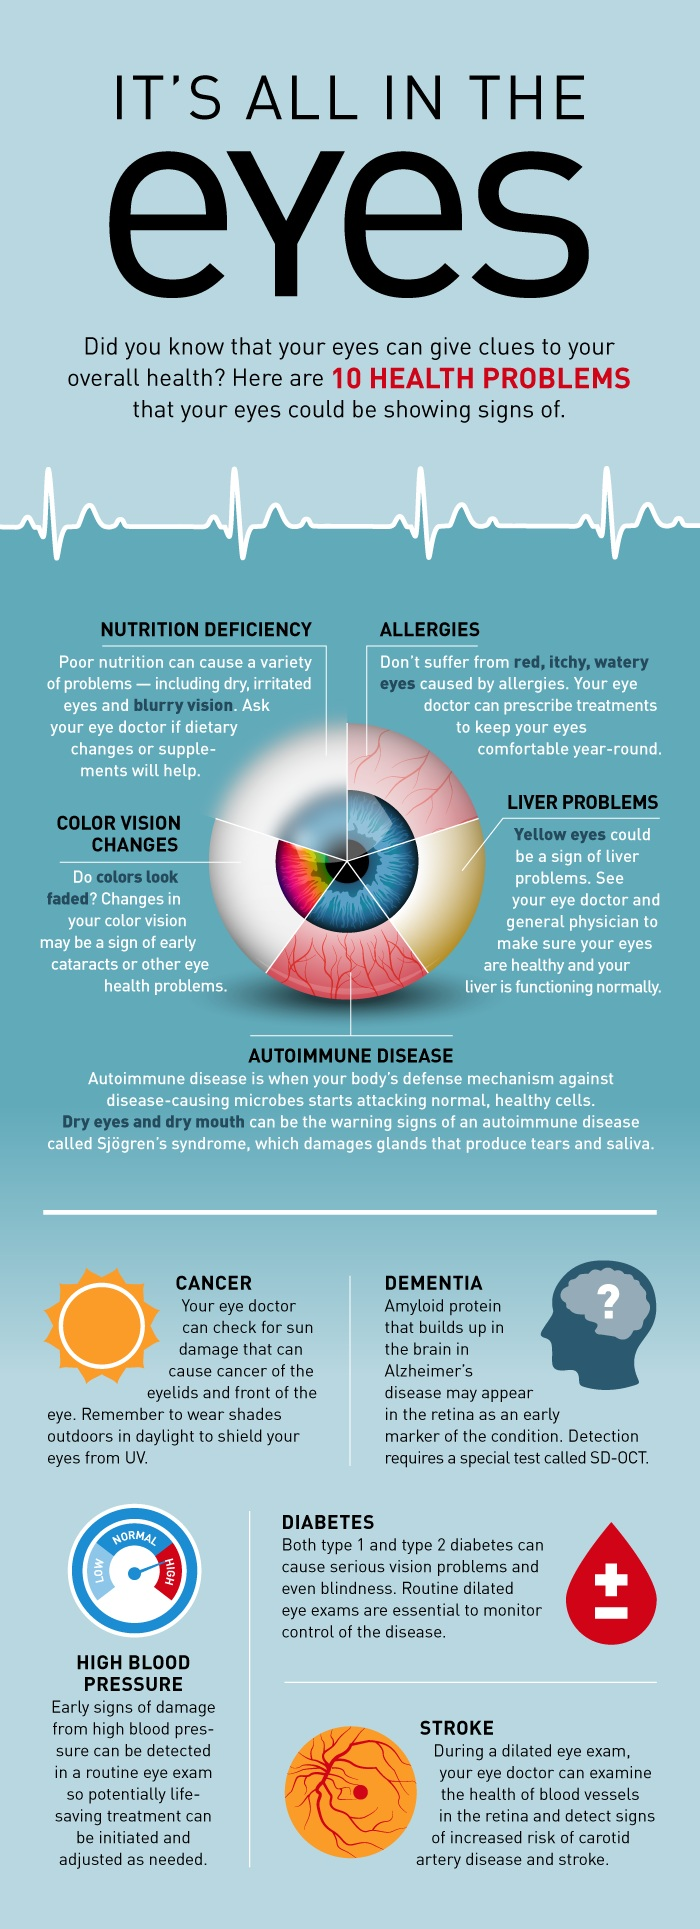 eye-health-info-700x2160.png